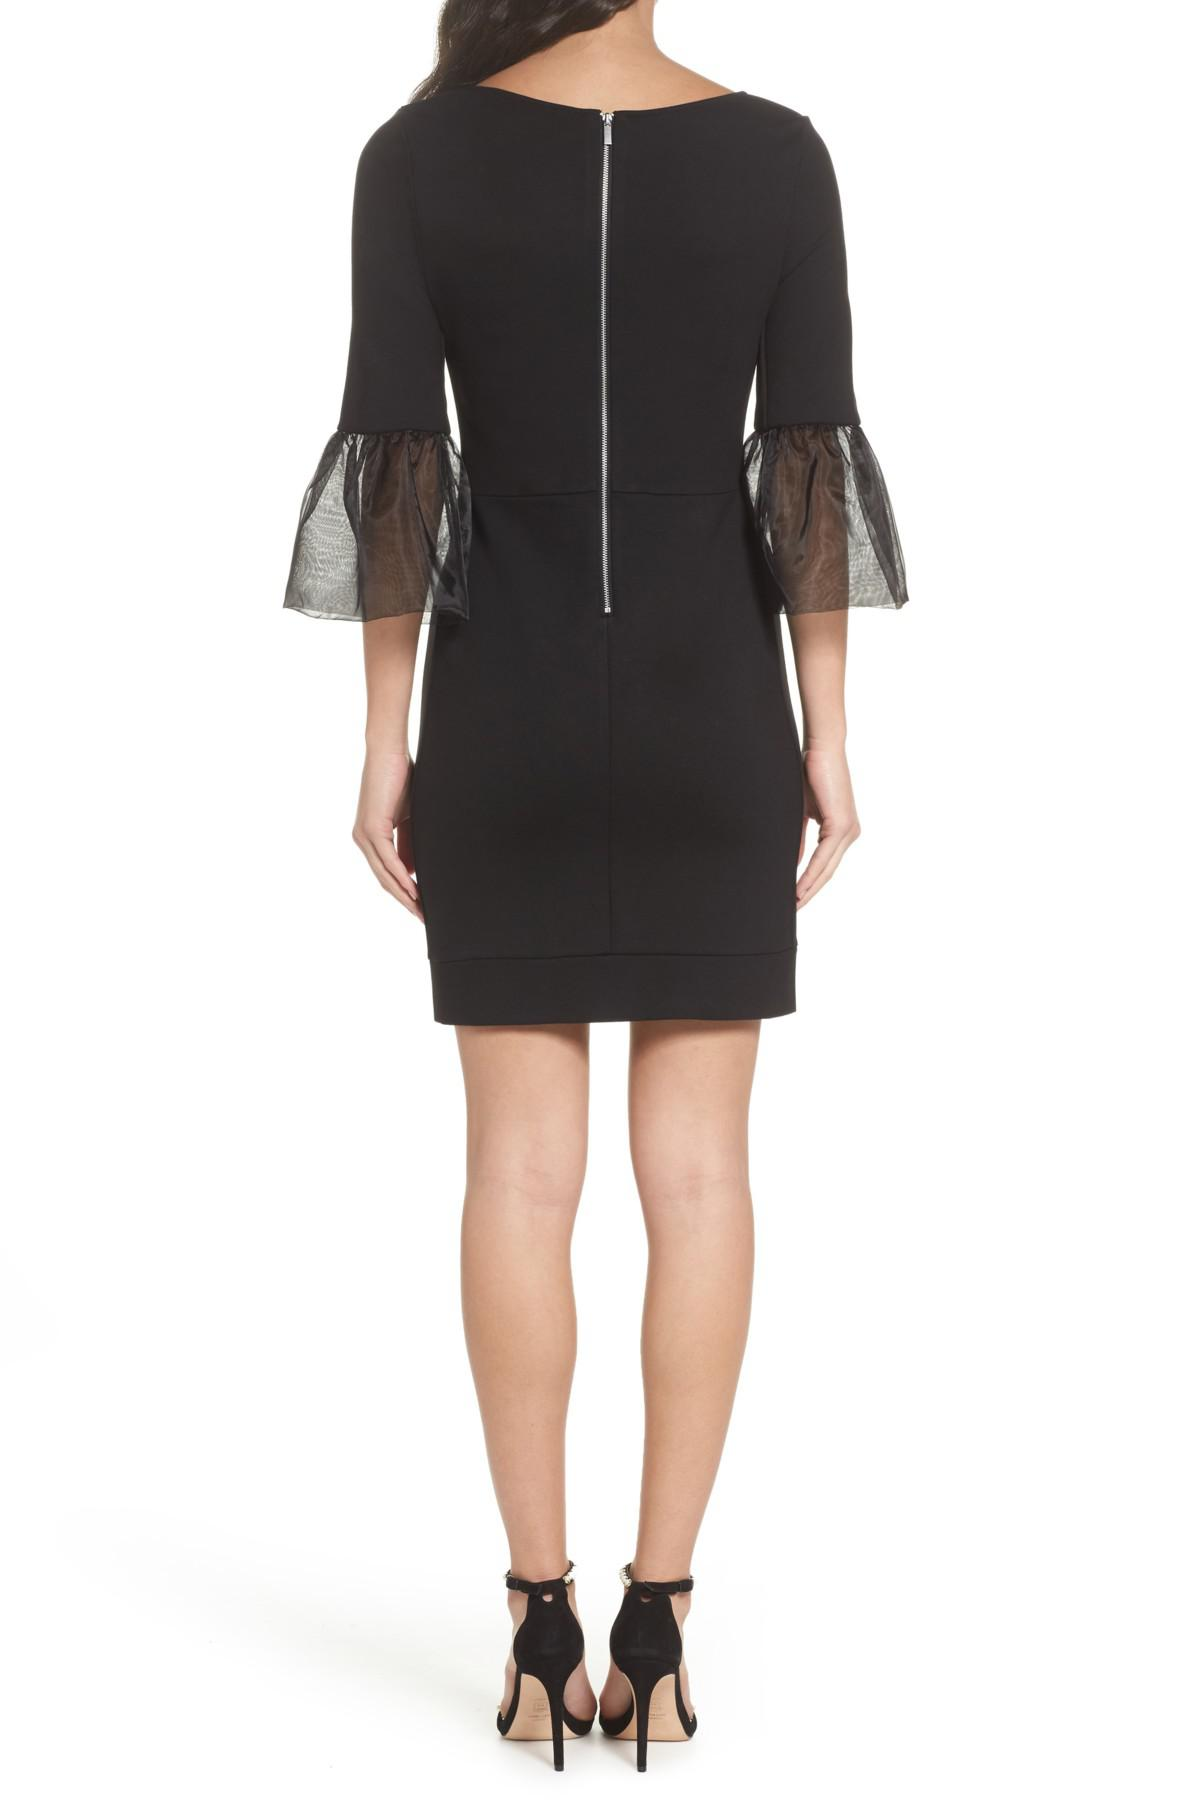 88900427b9d Lyst - French Connection Lula Bell Sleeve Bodycon Dress in Black ...